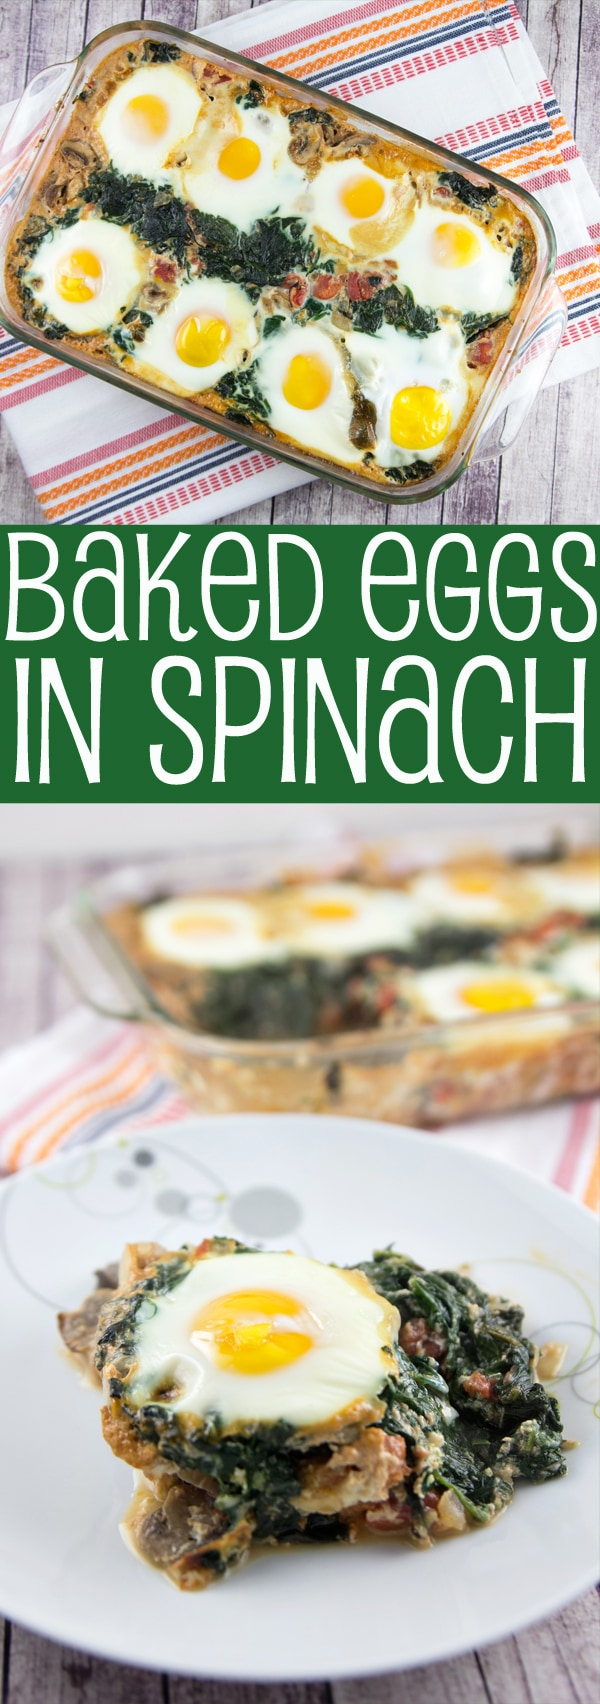 Baked Eggs in Spinach: start your mornings off right with this healthy and filling vegetarian and gluten-free breakfast. {Bunsen Burner Bakery}